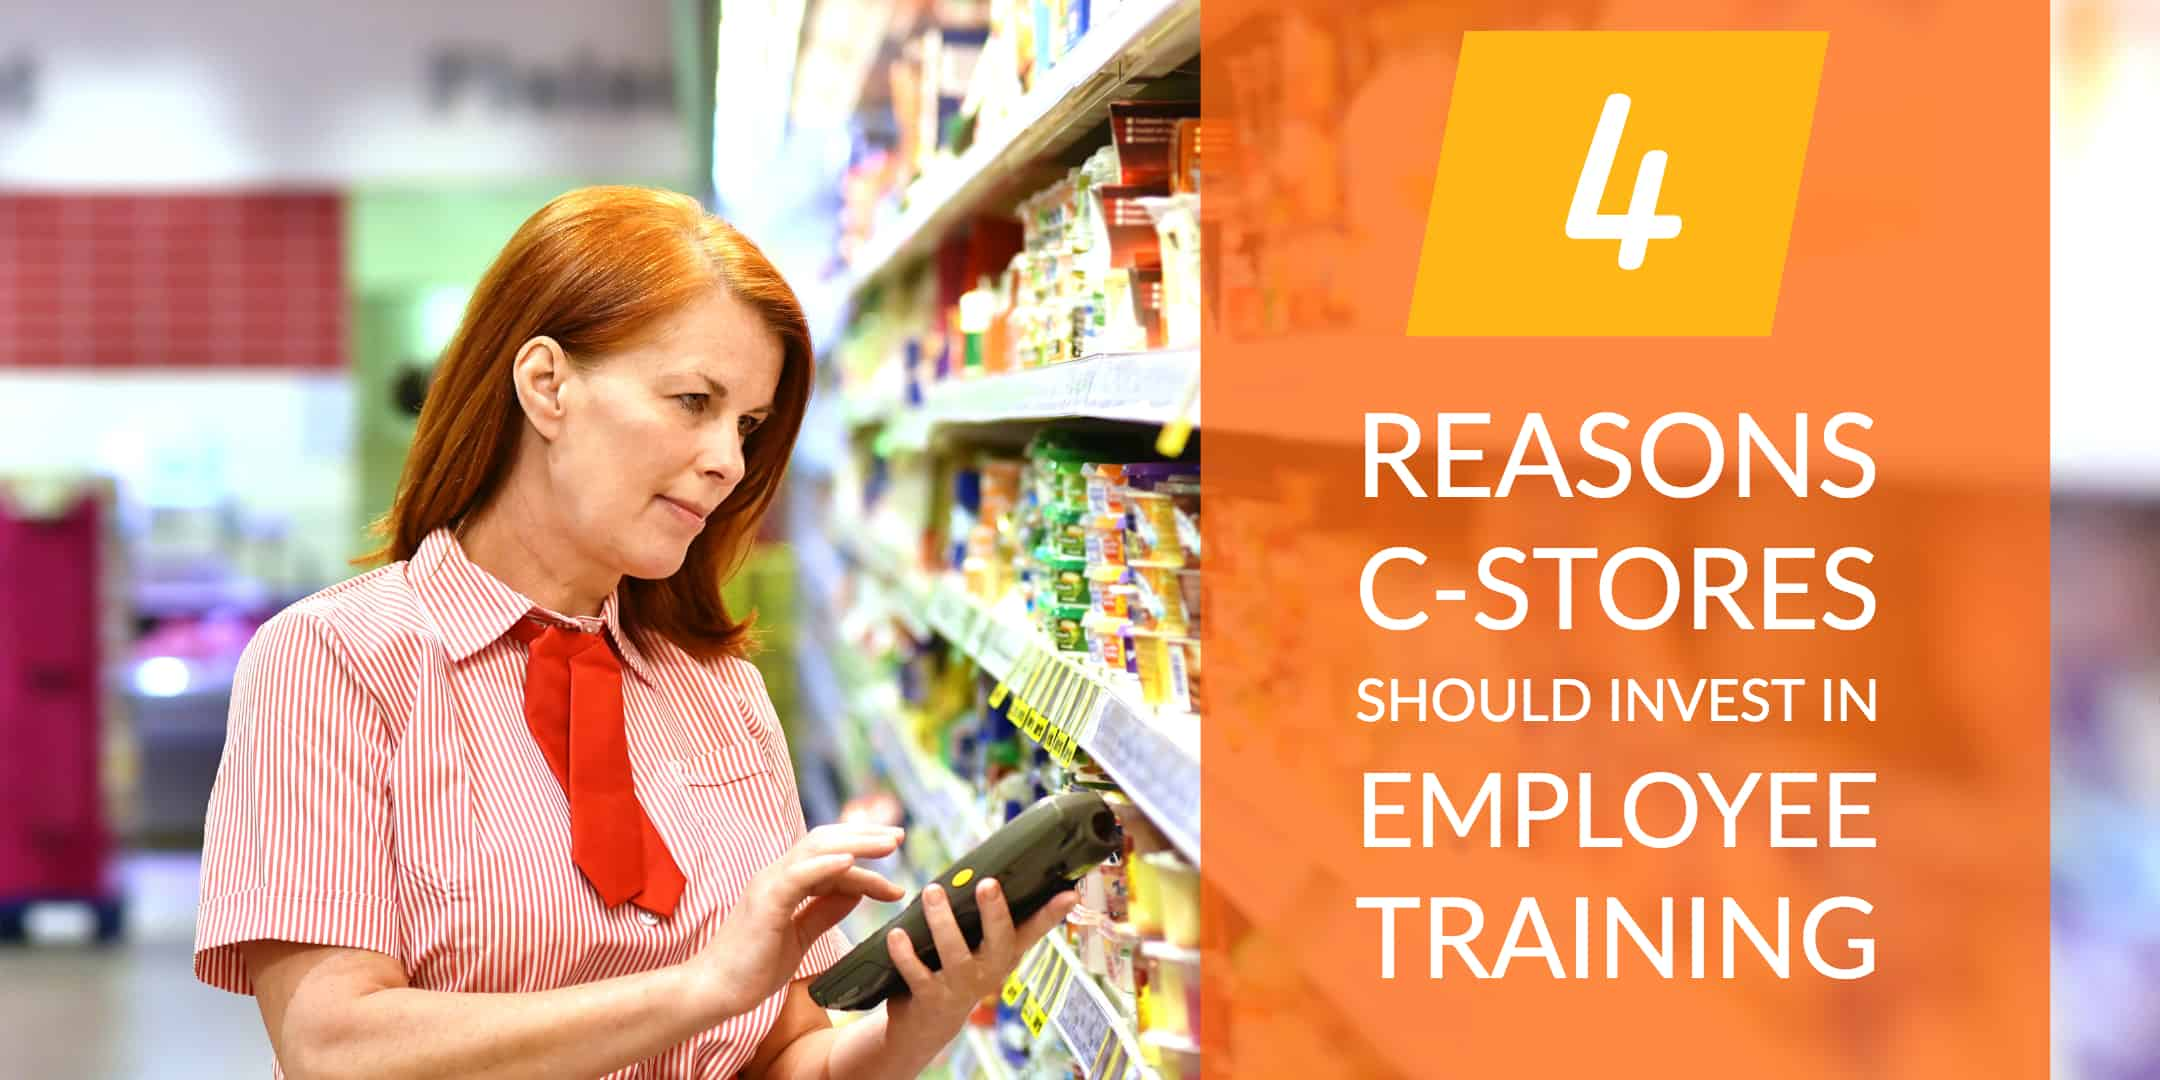 4 Reasons C-Stores Should Invest in Employee Training StrasGlobal